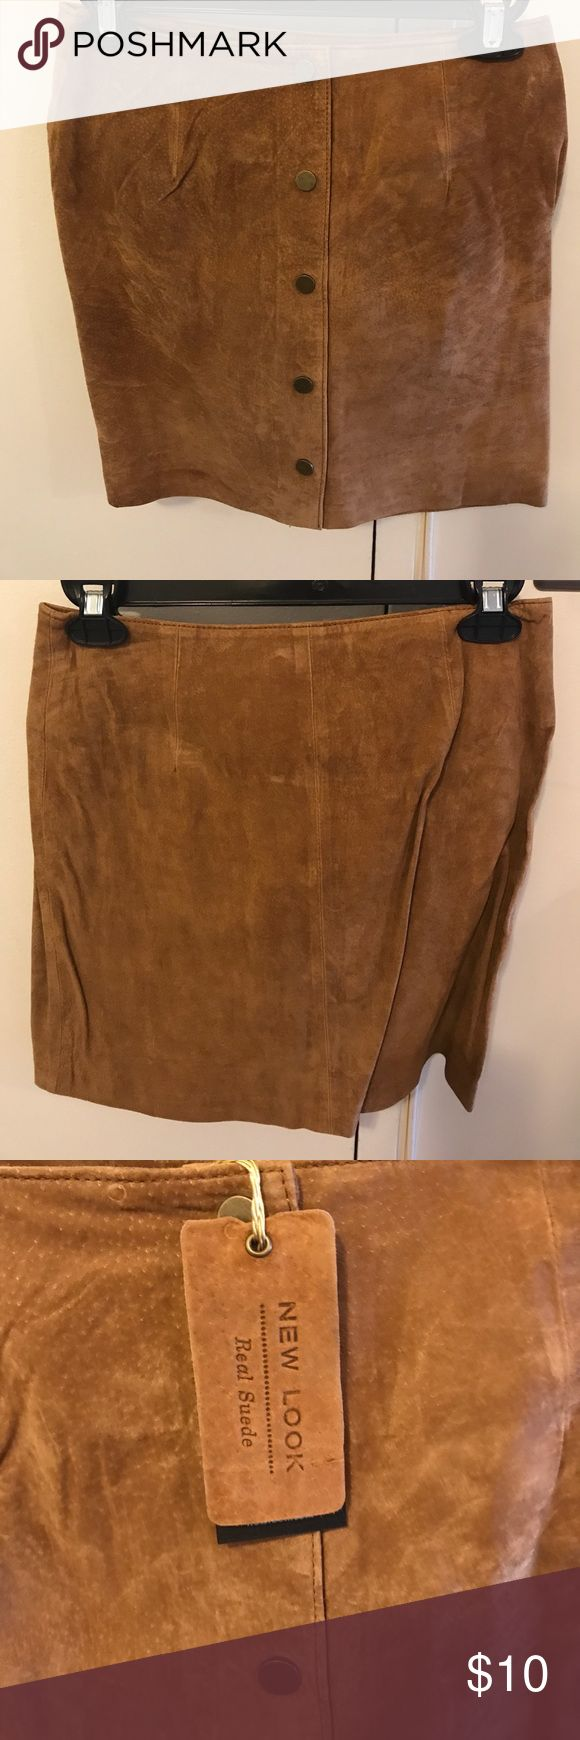 New Look Suede Skirt in Camel - BRAND NEW w/ TAGS Brand new New Look Popper Front Suede Camel Skirt from Asos. Never worn with tags in US size 2 New Look Skirts Mini